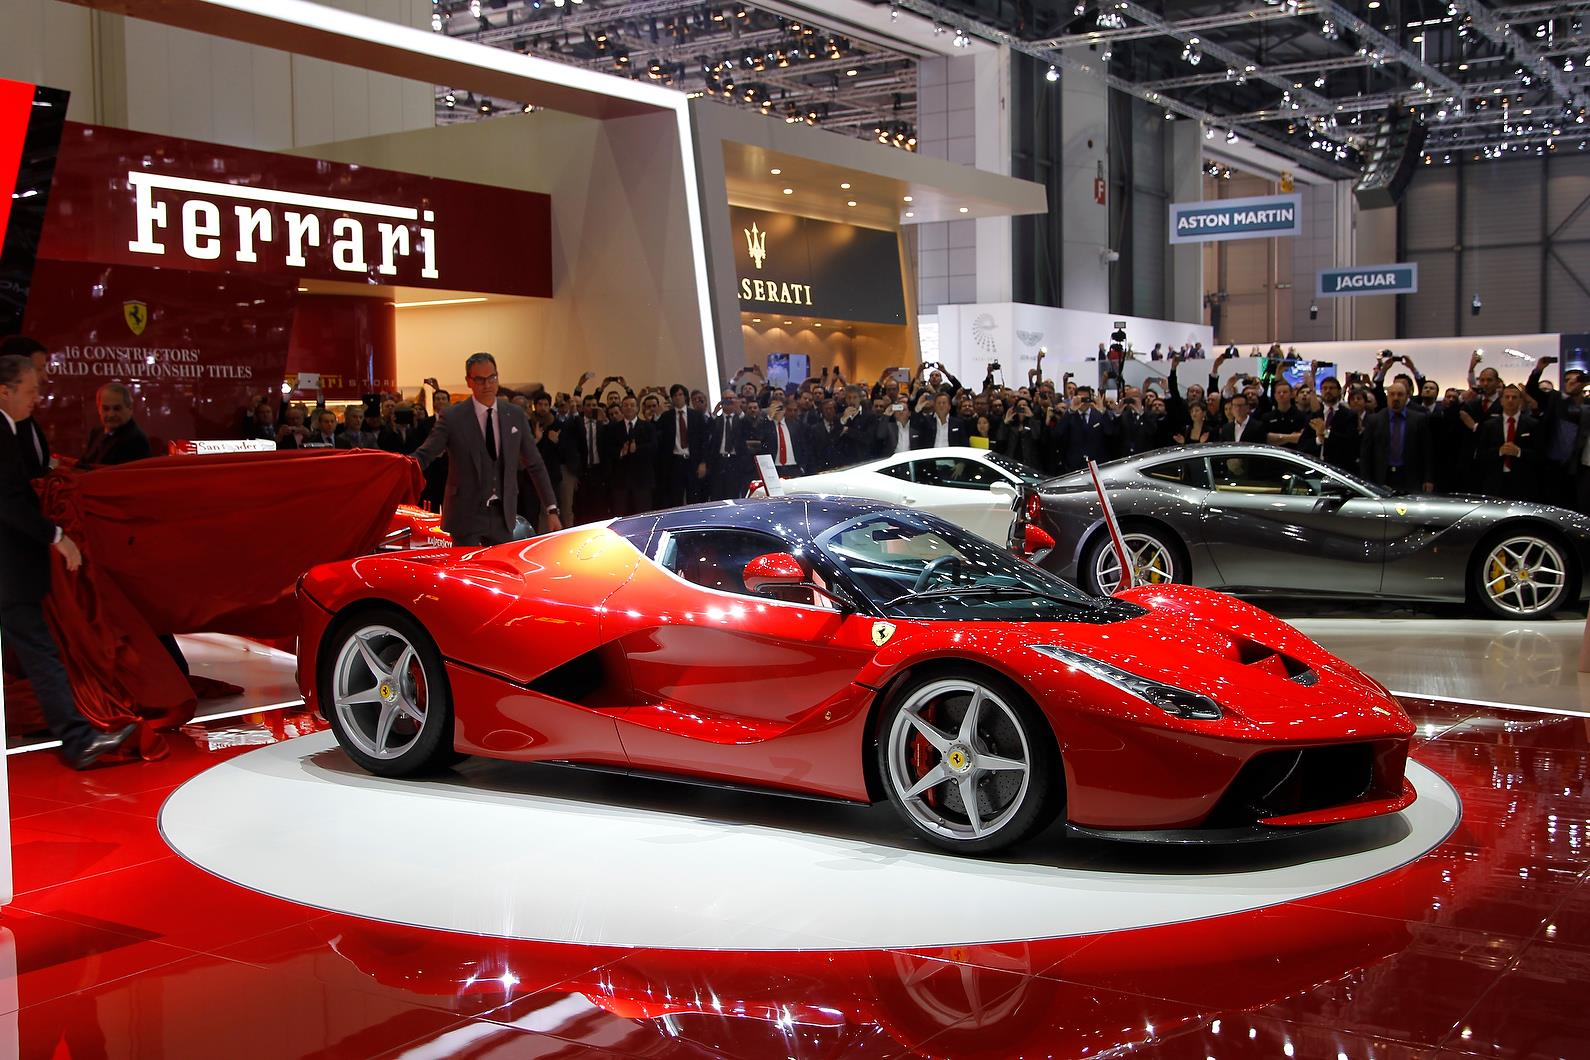 Geneva Motor Show 2013 video report